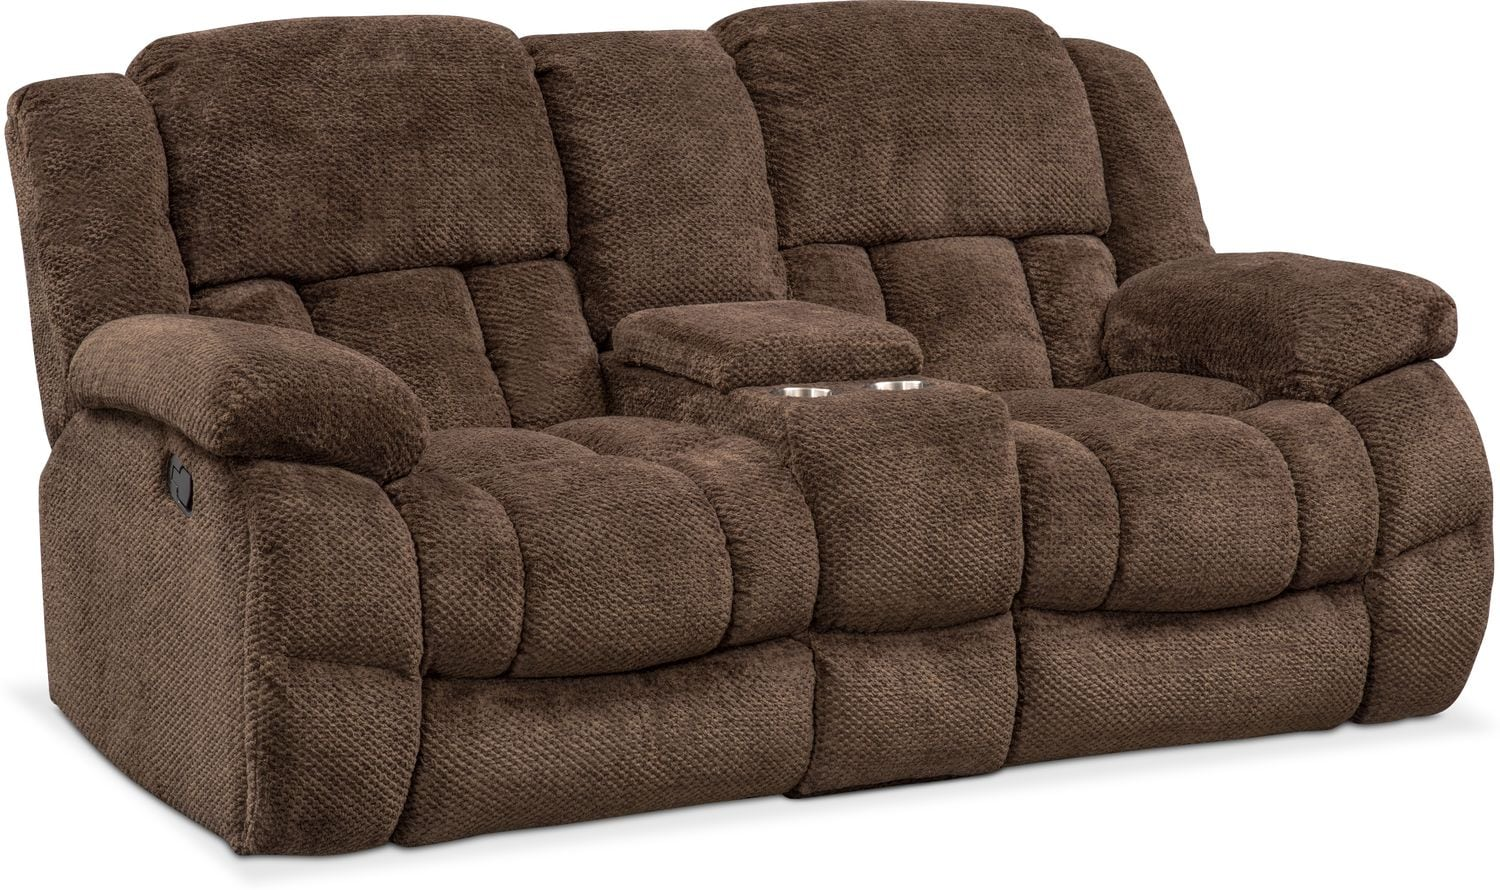 Turbo Reclining Sofa Reclining Loveseat And Glider